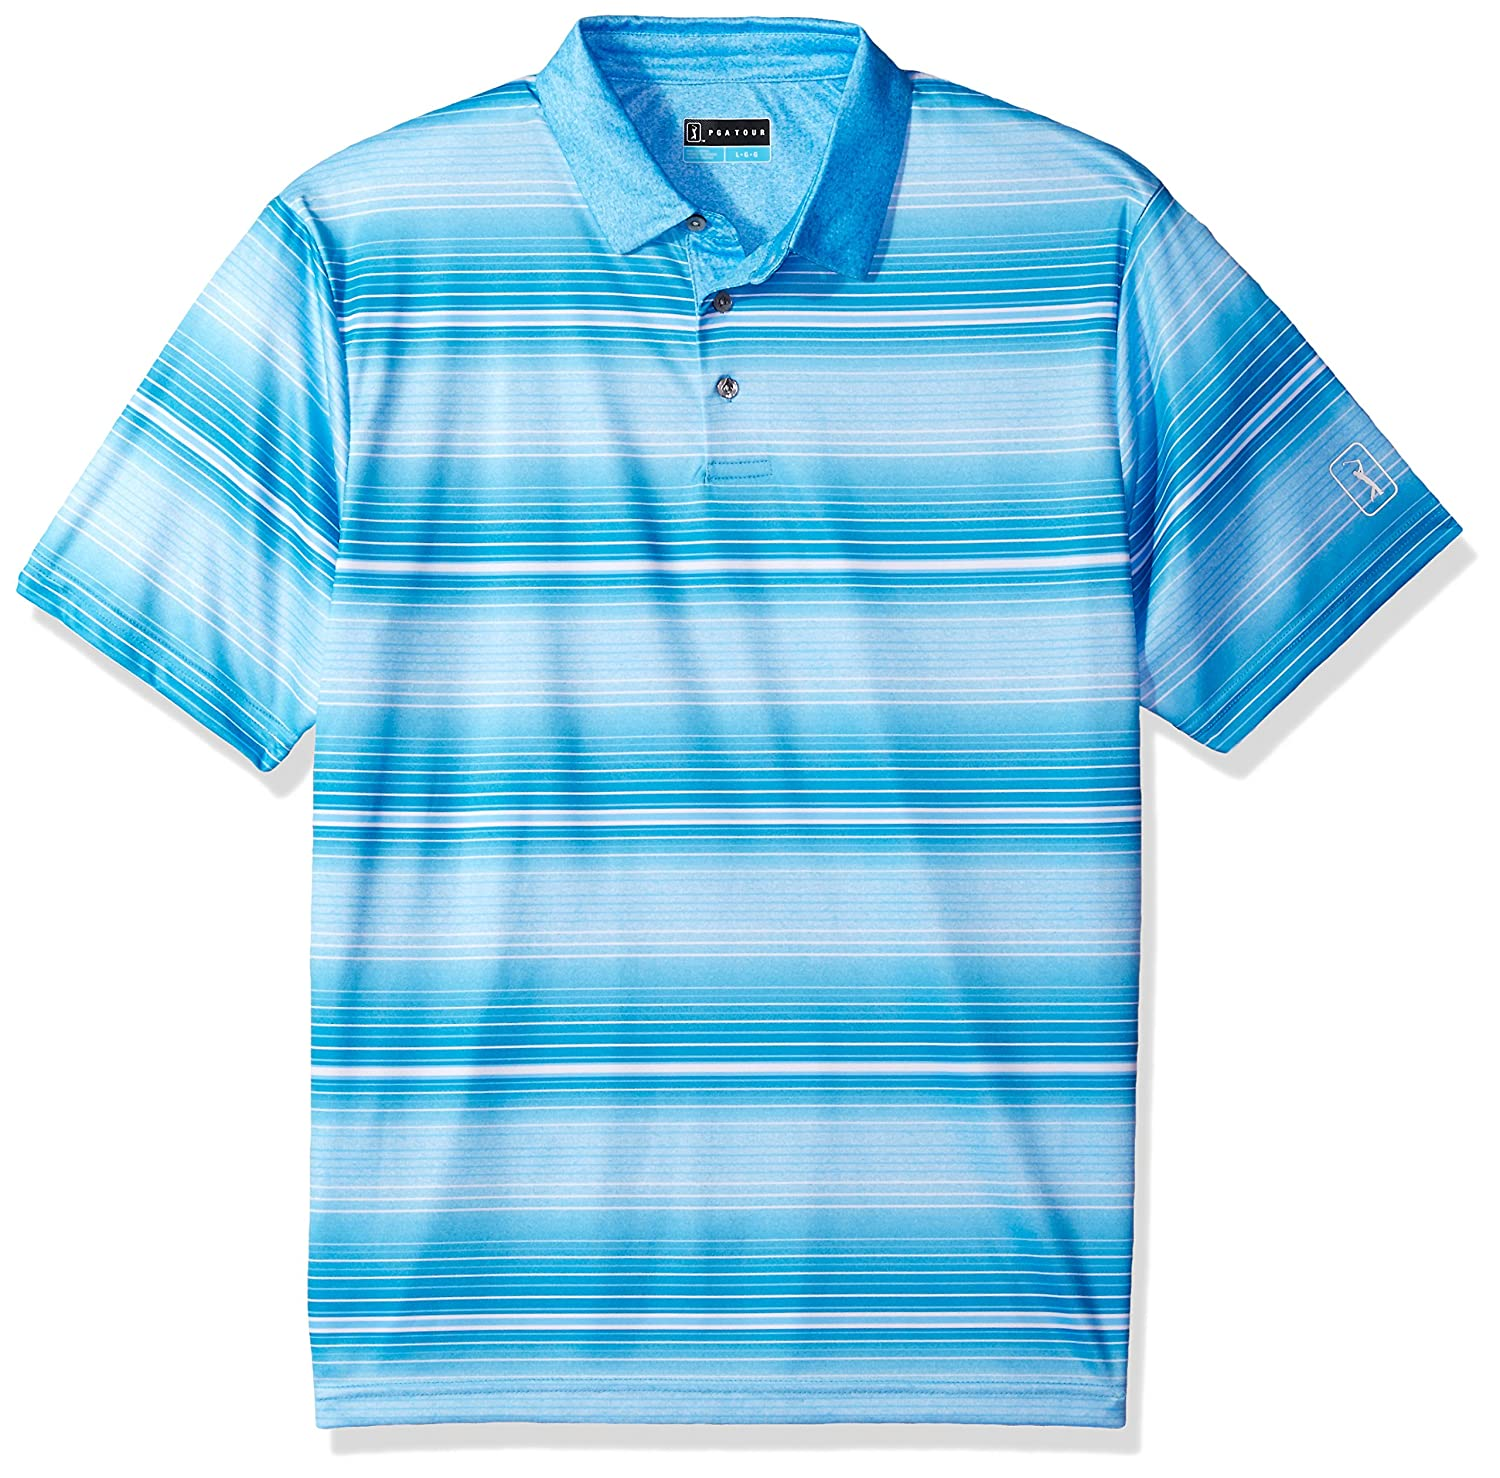 PGA TOUR SHIRT メンズ B0765DP8QP X-Large|Alaskan Blue Heather_pvks8069 Alaskan Blue Heather_pvks8069 X-Large